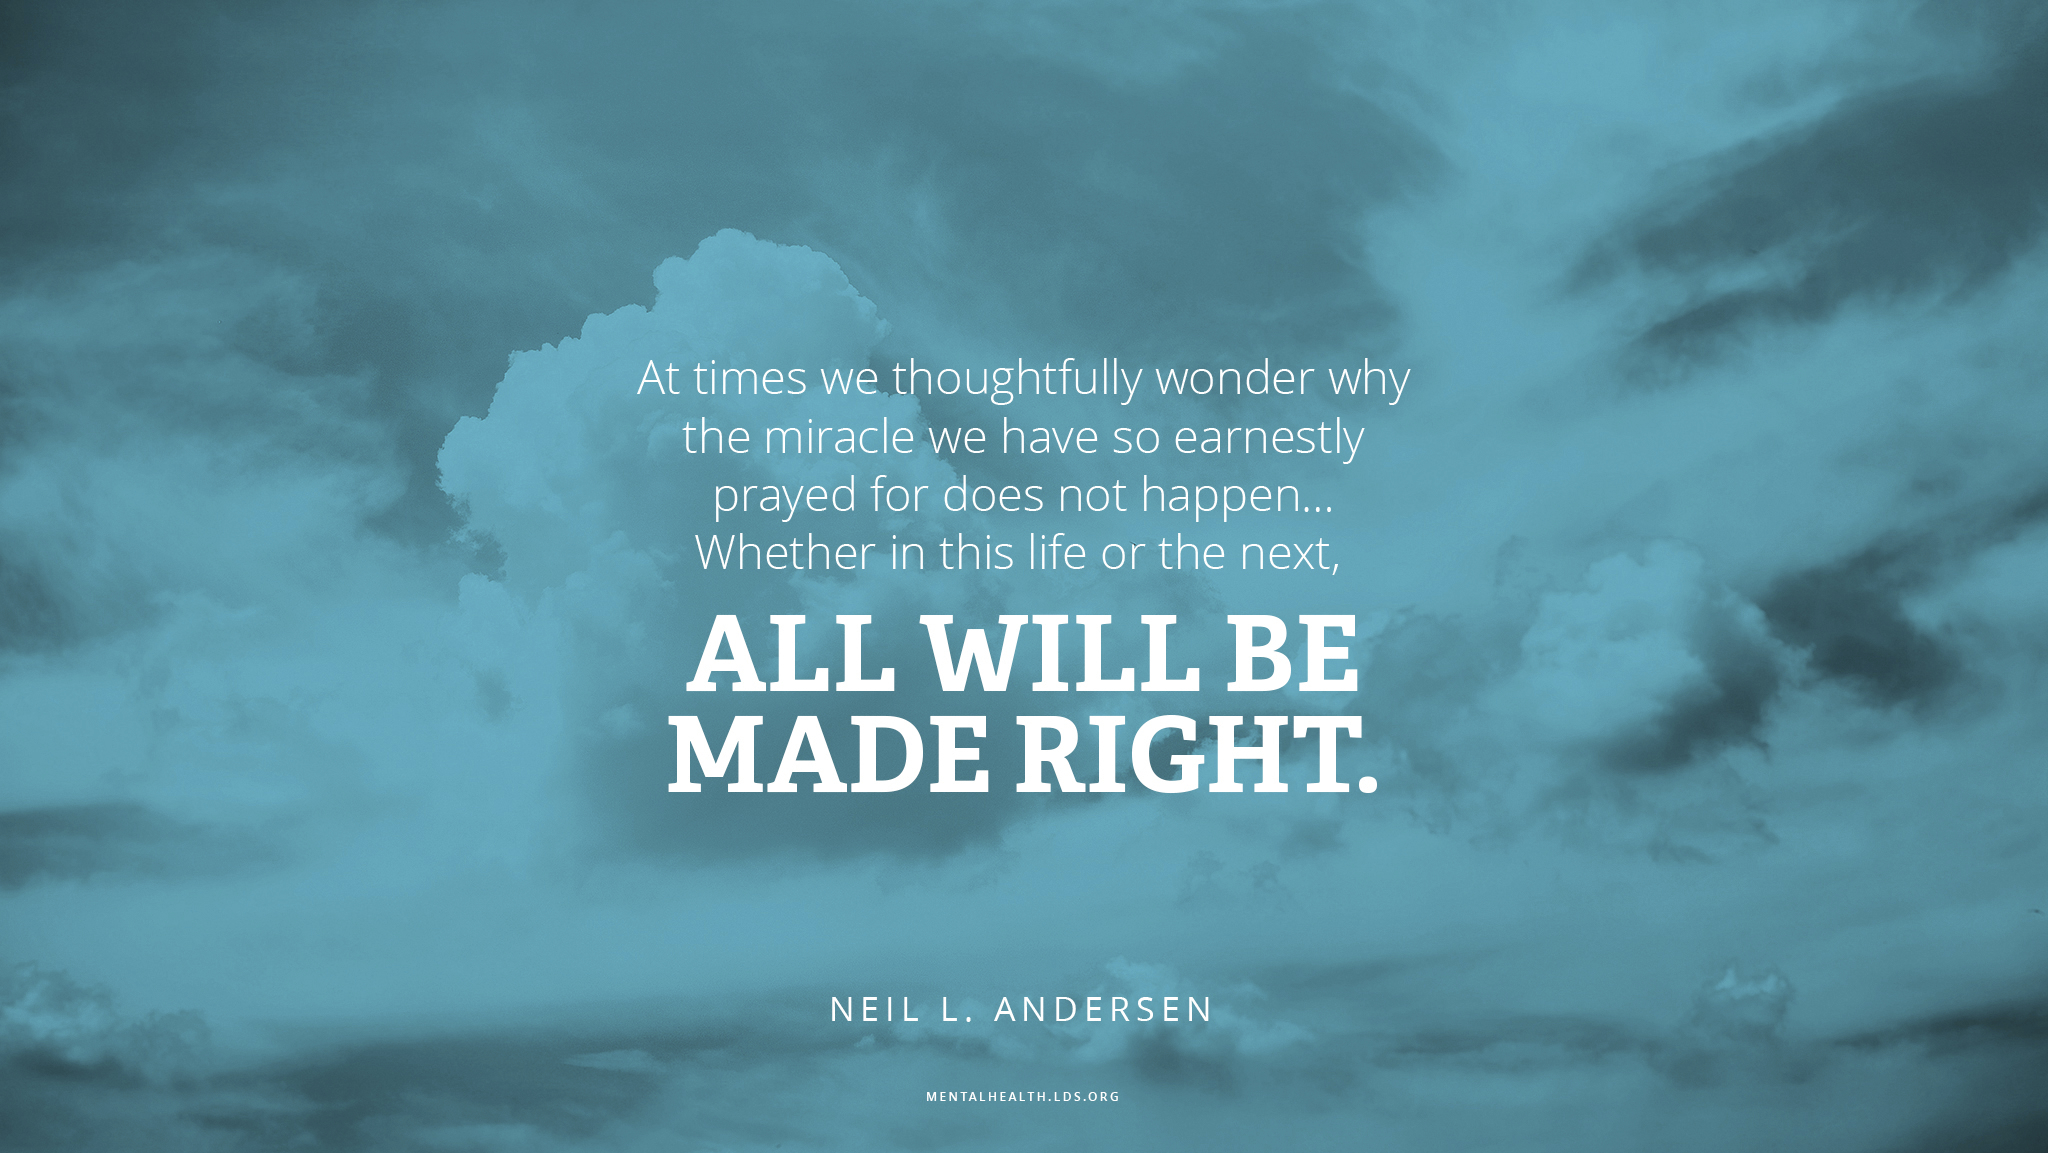 """At times we thoughtfully wonder why the miracle we have so earnestly prayed for does not happen … Whether in this life or the next, all will be made right.""—Elder Neil L. Andersen, ""What Thinks Christ of Me?"""